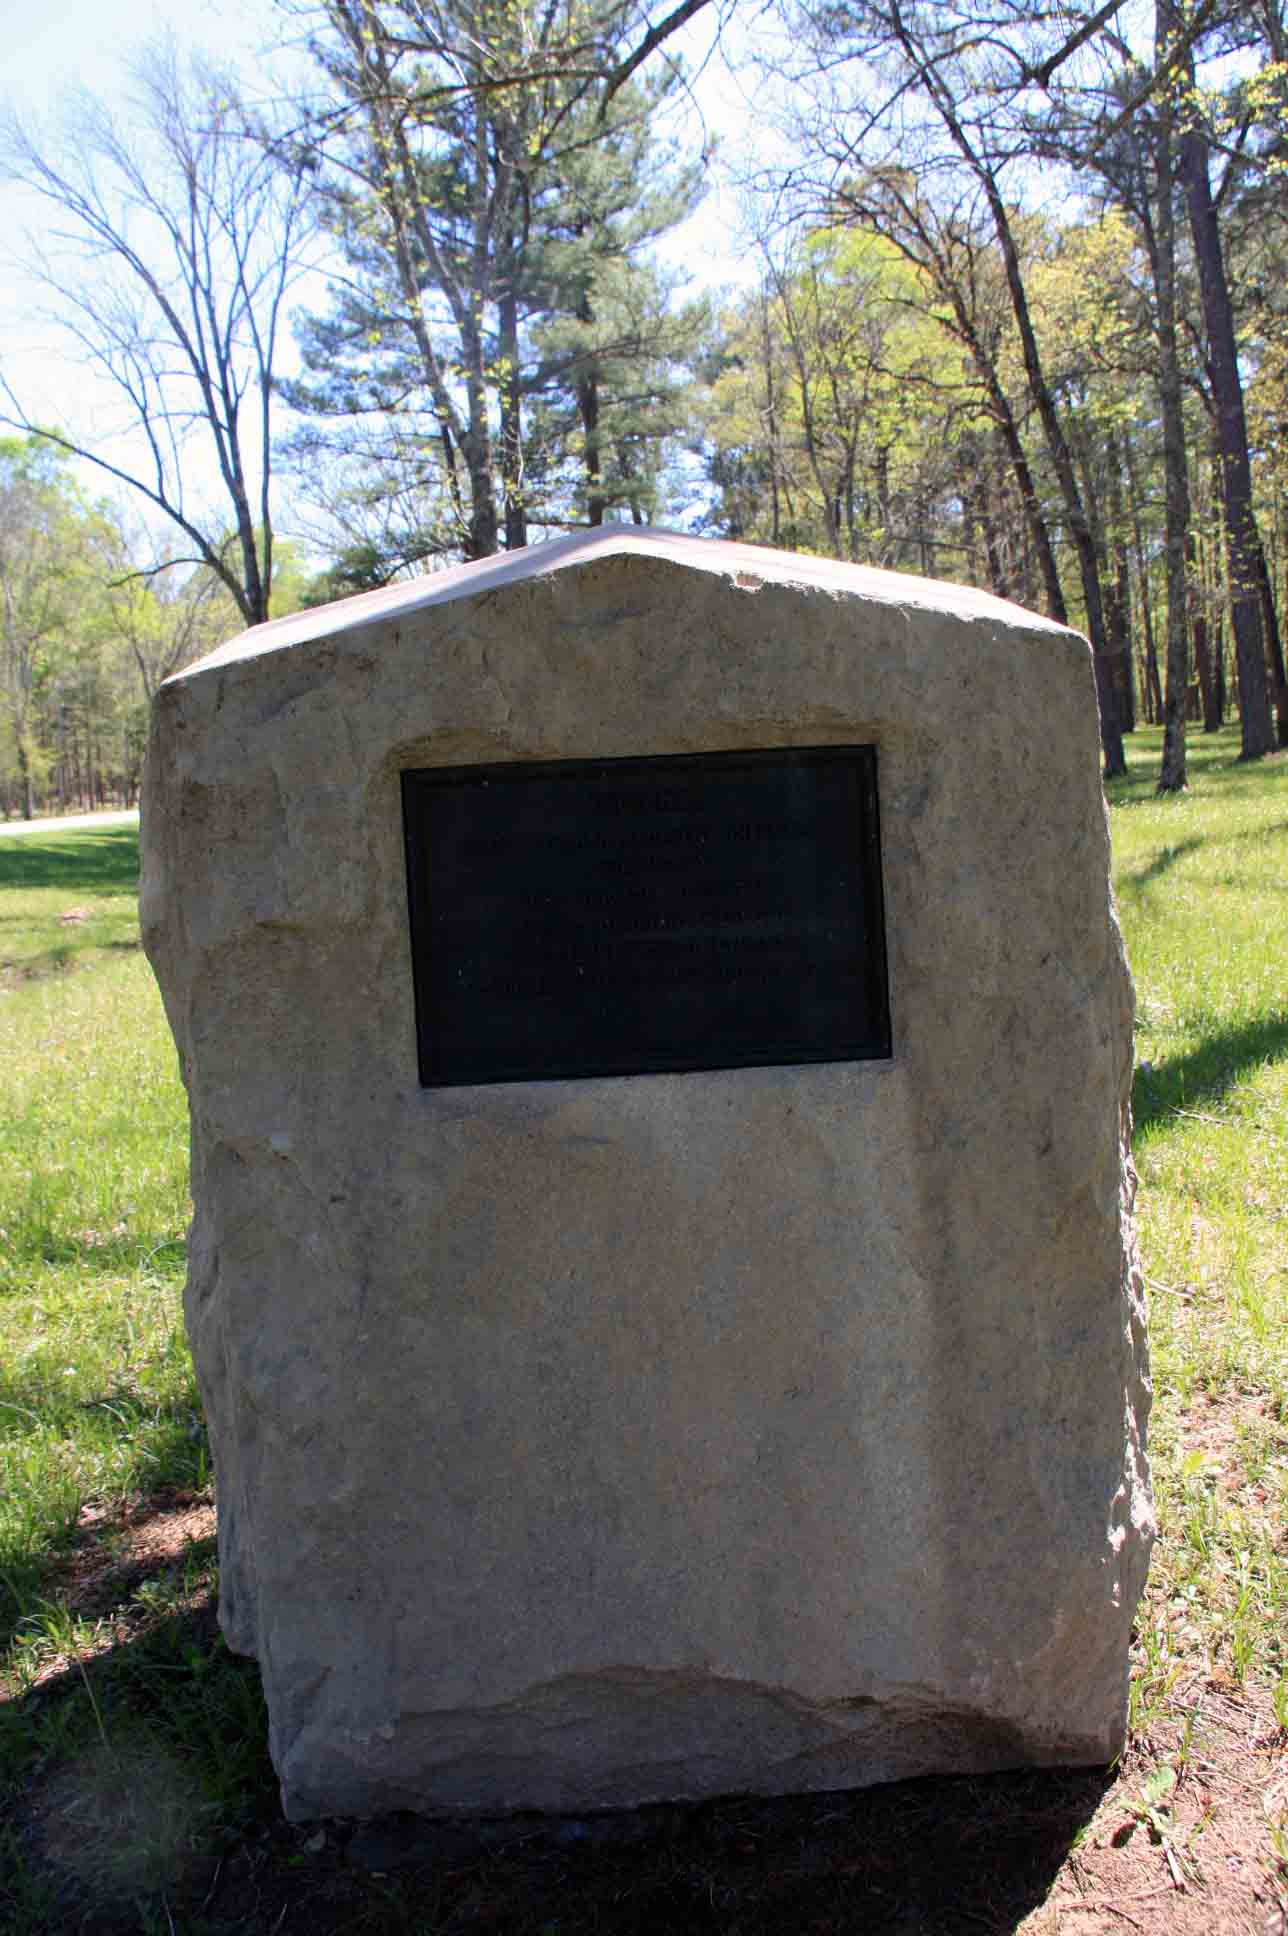 88th Indiana Infantry Regiment Marker, click photo to enlarge.